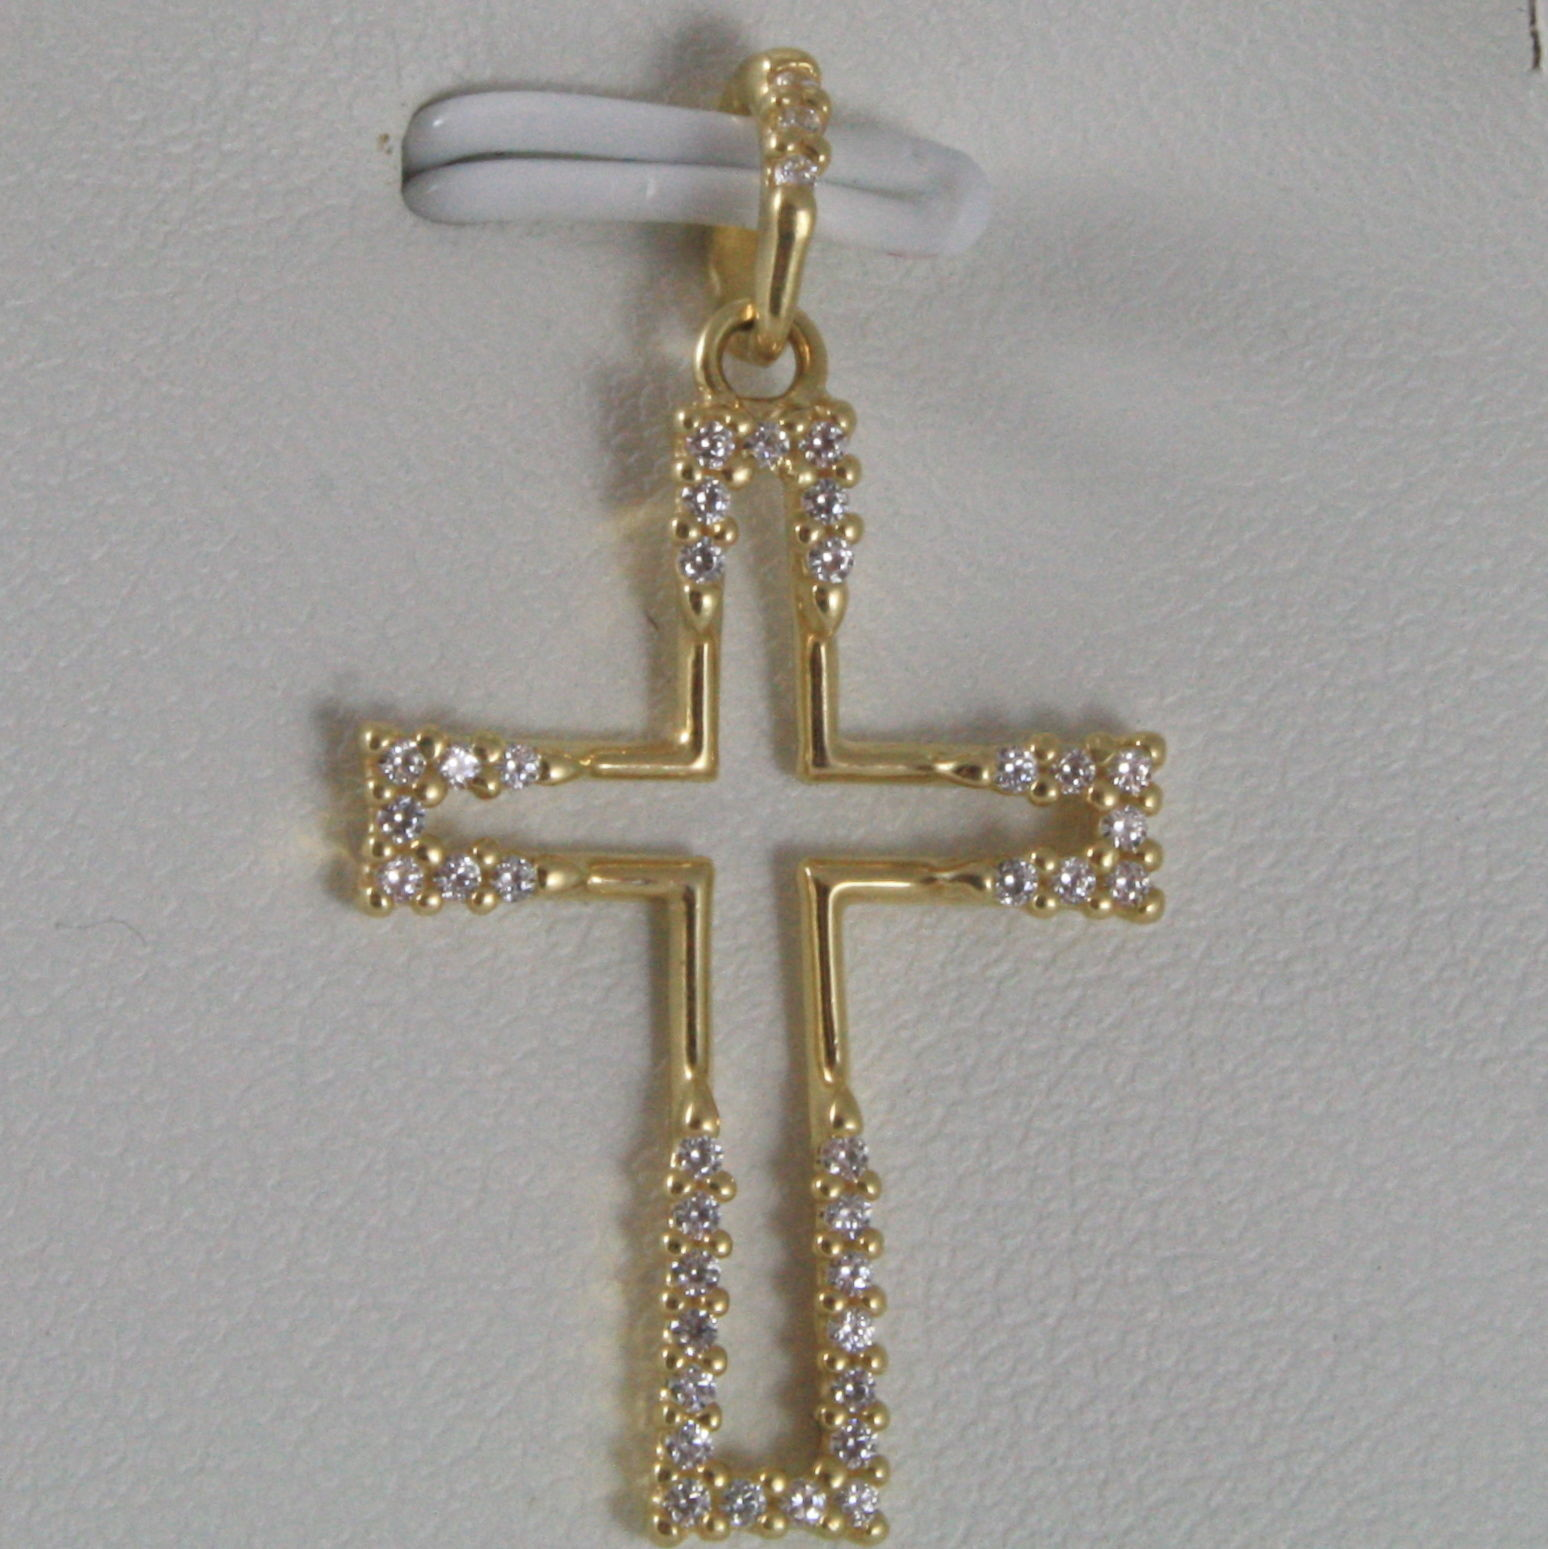 SOLID 18K YELLOW GOLD CROSS, STYLISED WITH ZIRCONIA 1.18, MADE IN ITALY